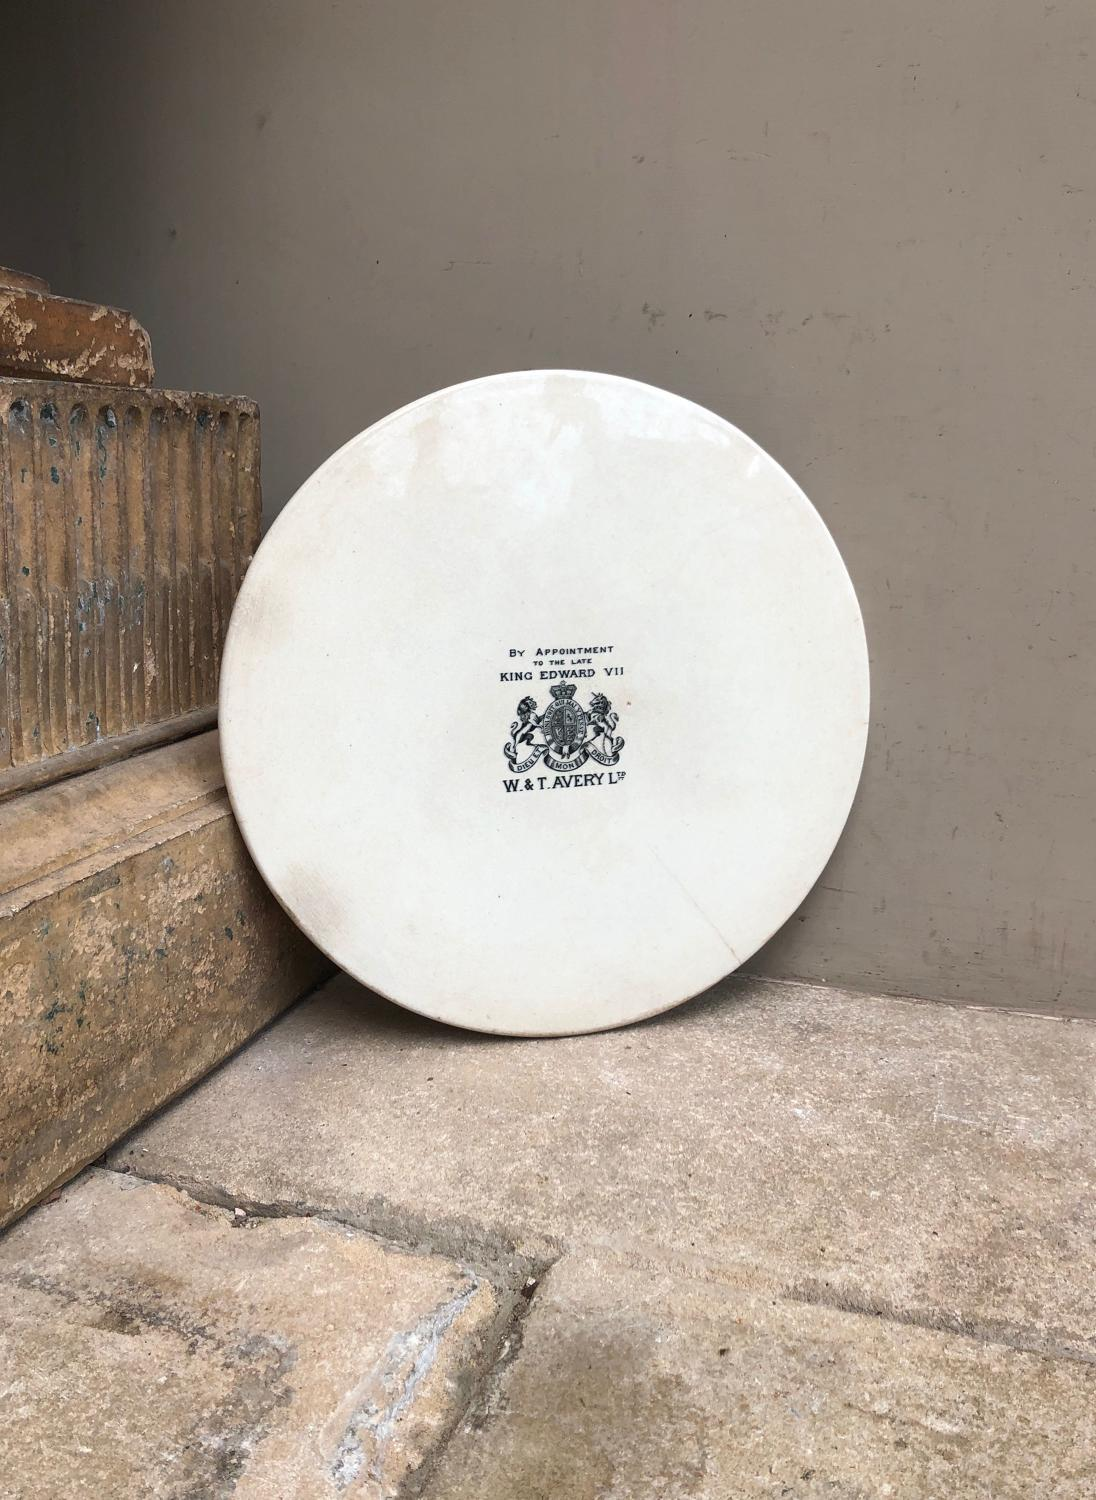 Huge Edwardian White Ironstone Avery Scale Plate - Perfect for Cheese